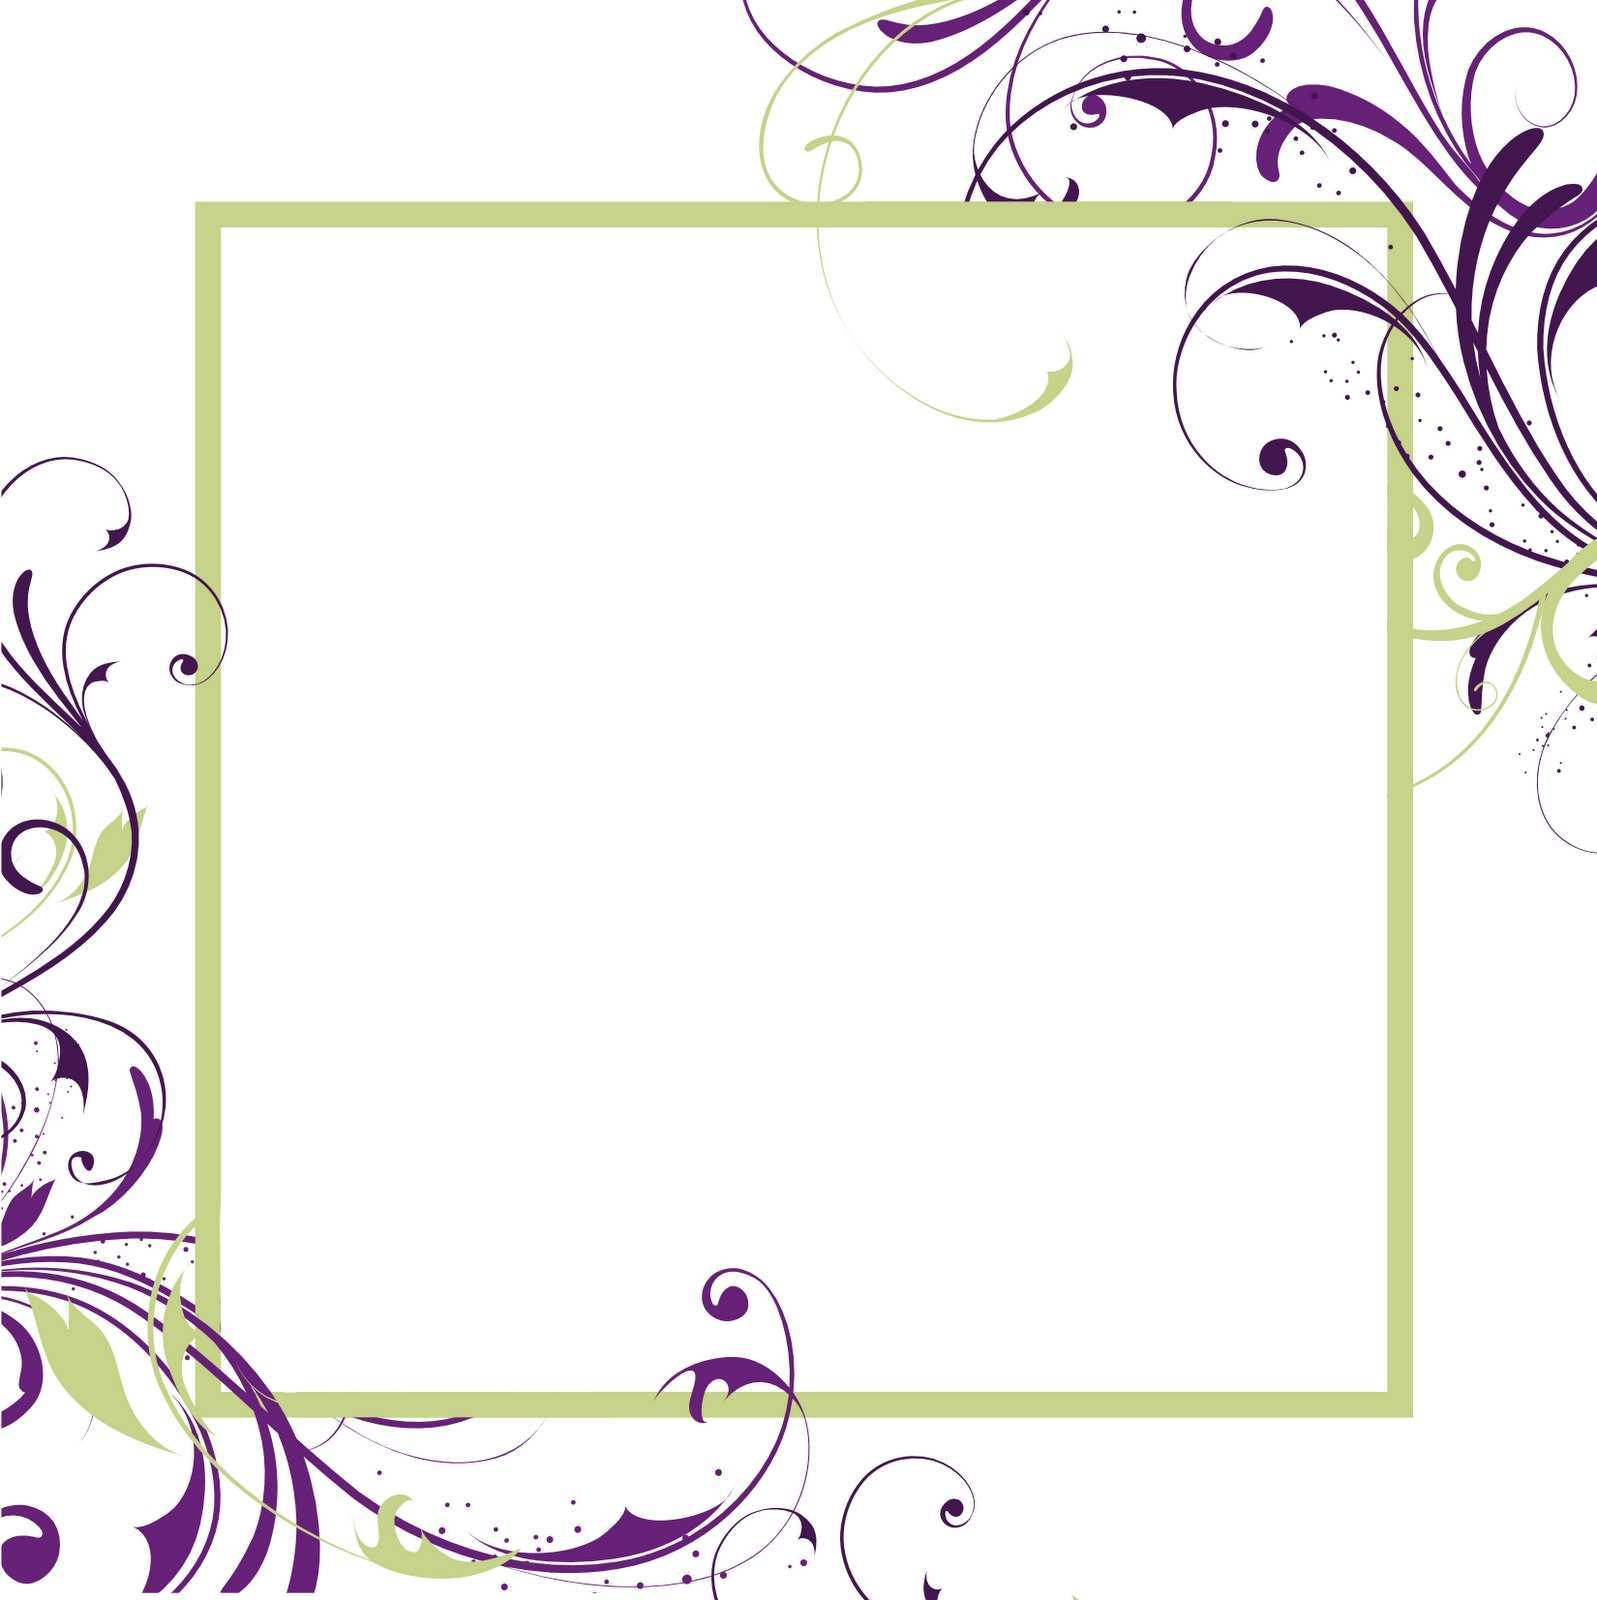 55 Format Invitation Card Template Png PSD File for Invitation Card Template Png